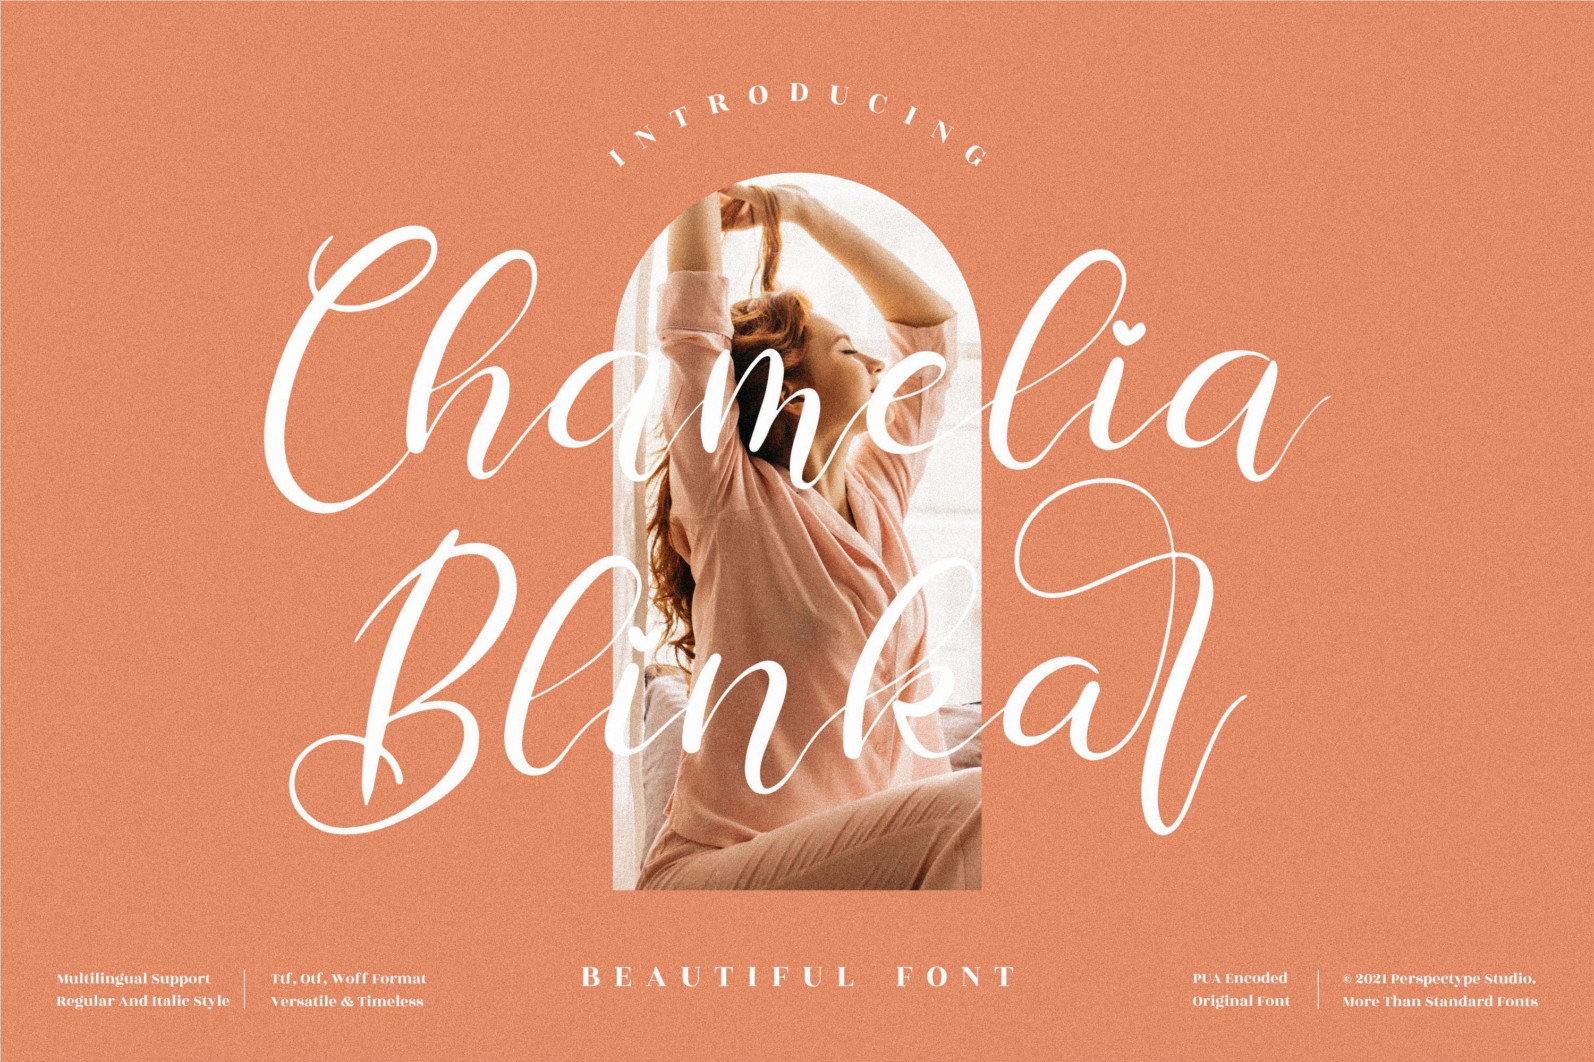 Love love Font Bundle from Perspectype Studio - 13 45 scaled -